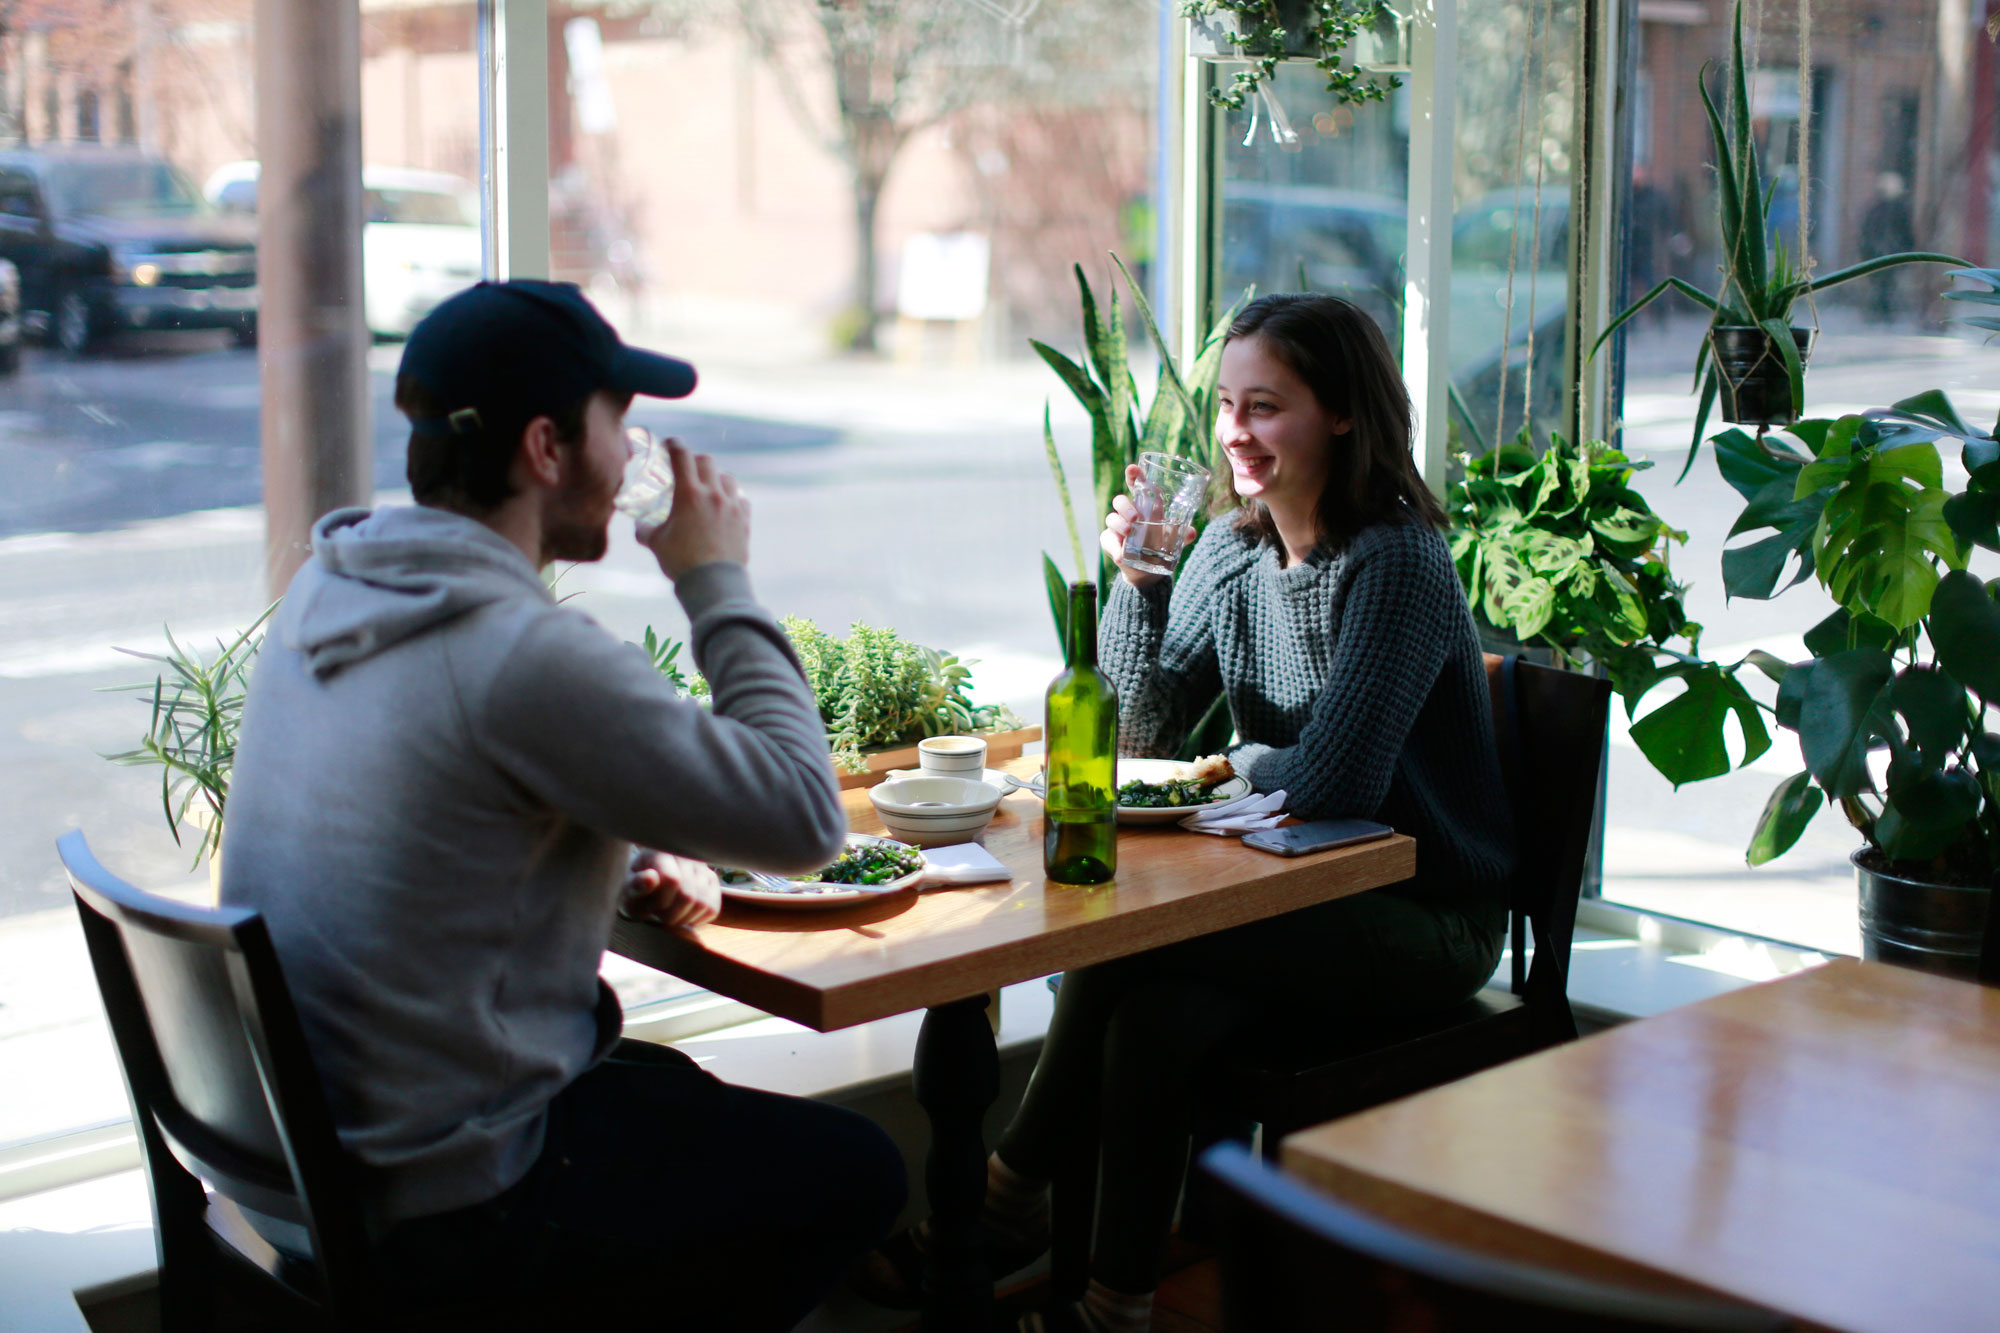 Kaila Carcia and her friend Jason Baraowski take lunch at The Hungry Pigeon, 743 S 4th St., Wednesday March 30, 2016.